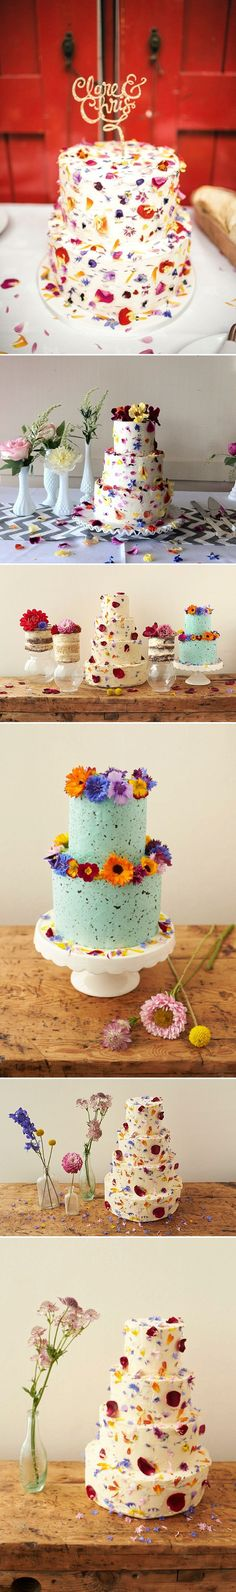 Wedding cakes decorated with edible petals  #Quirky Wedding Cakes http://beesbakery.co.uk